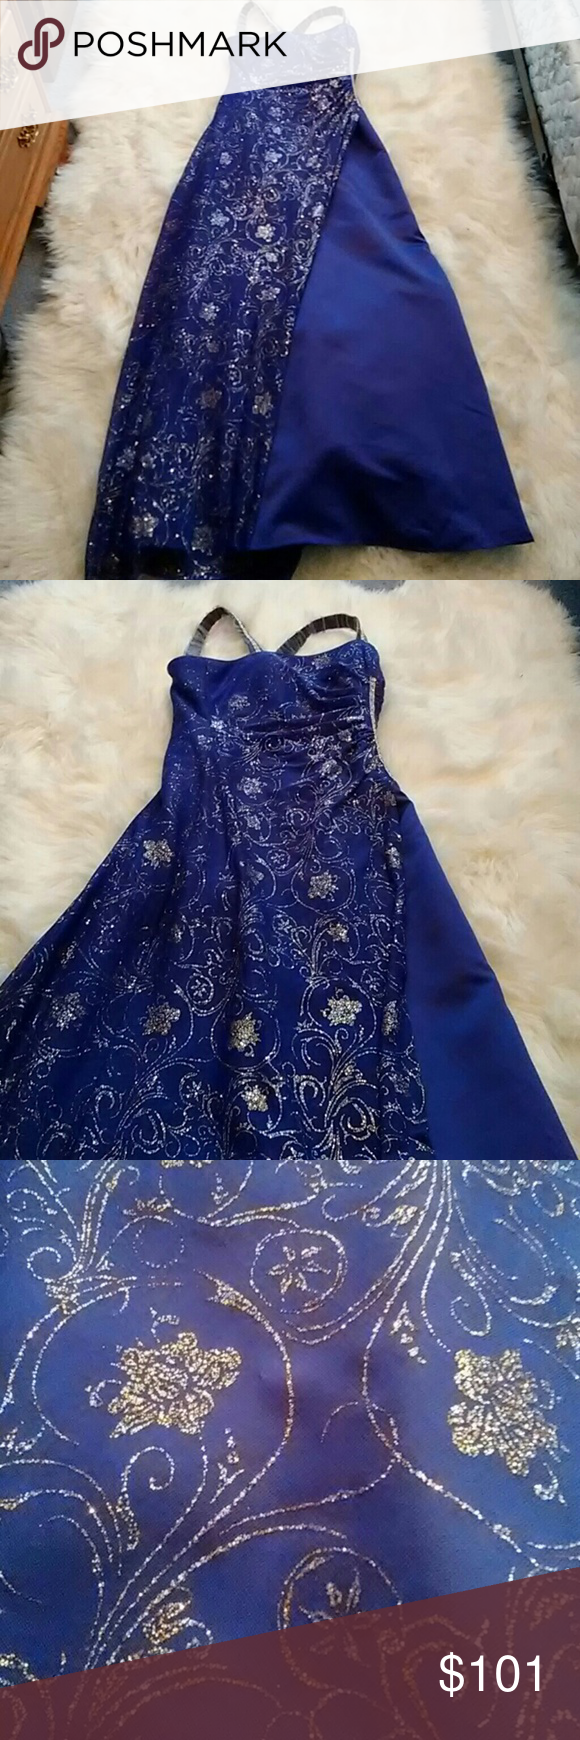 Blue sparkly prom dress sparkly prom dresses white stain and ball